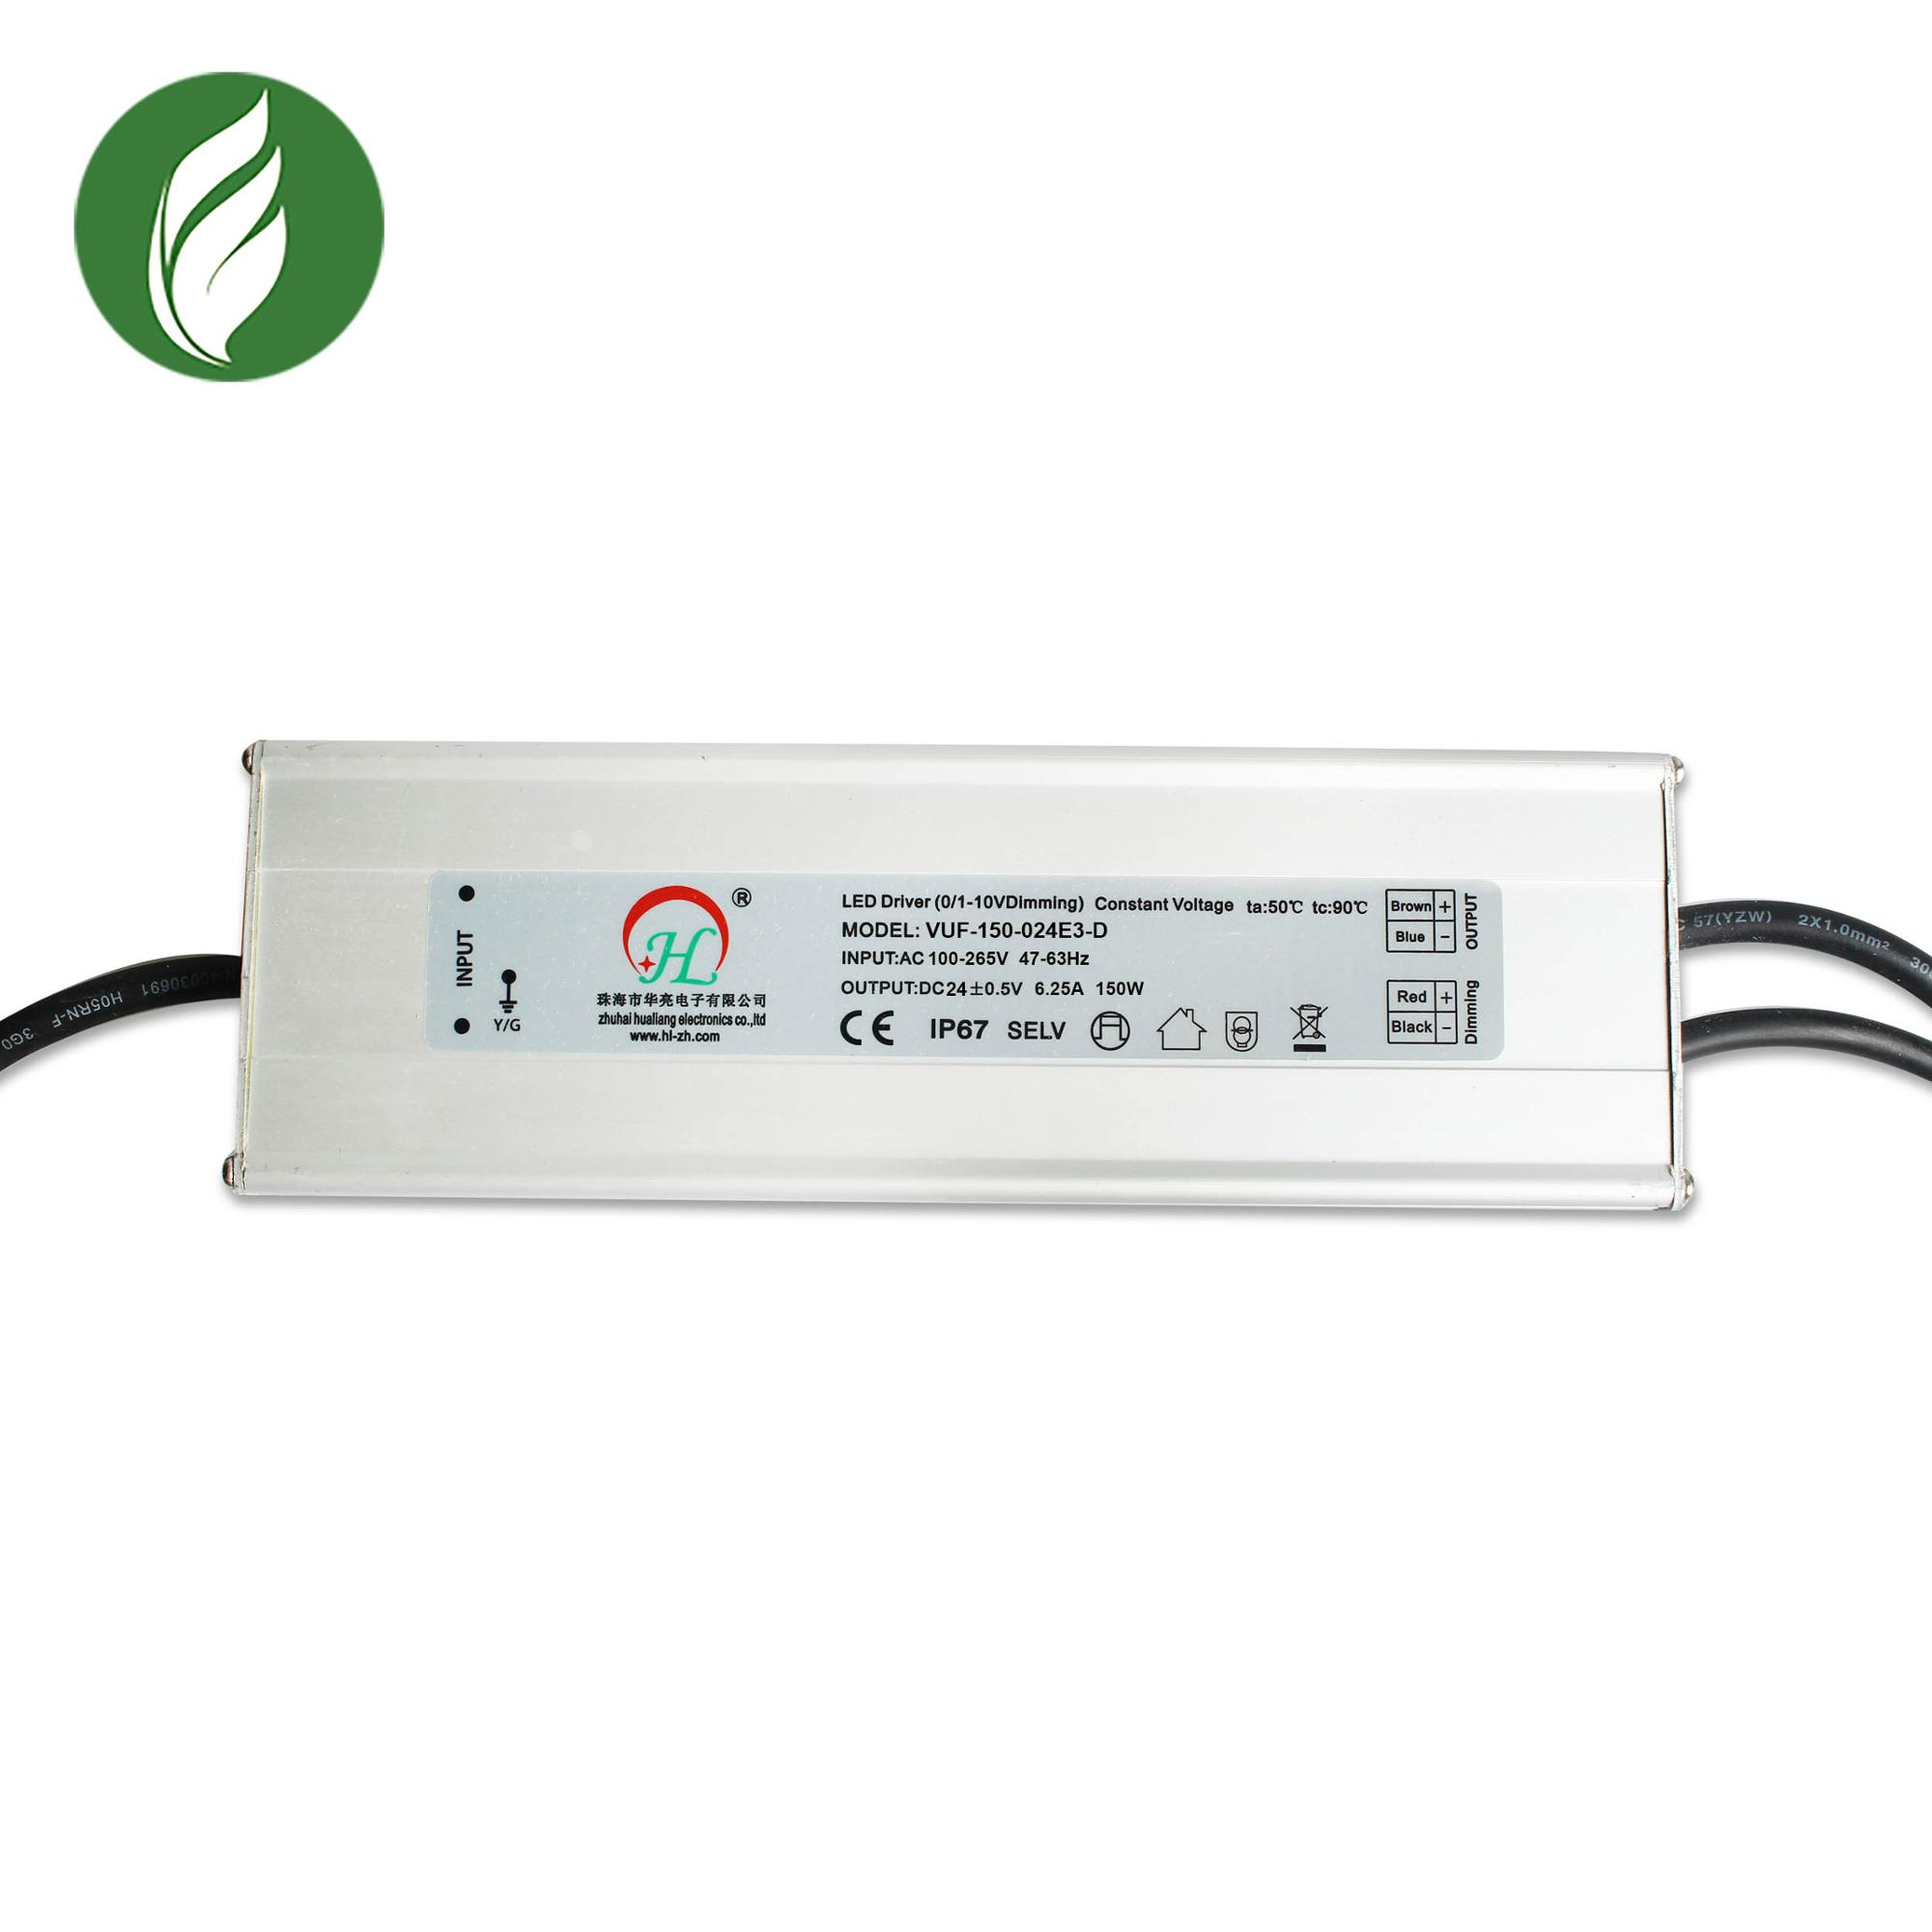 36 Volt Power Supply 48 Volt Supply 2A AC DC 110V 220V to 48V 36V 2A Power Adapter Transformer LED Driver 36V 48V for LED Strip